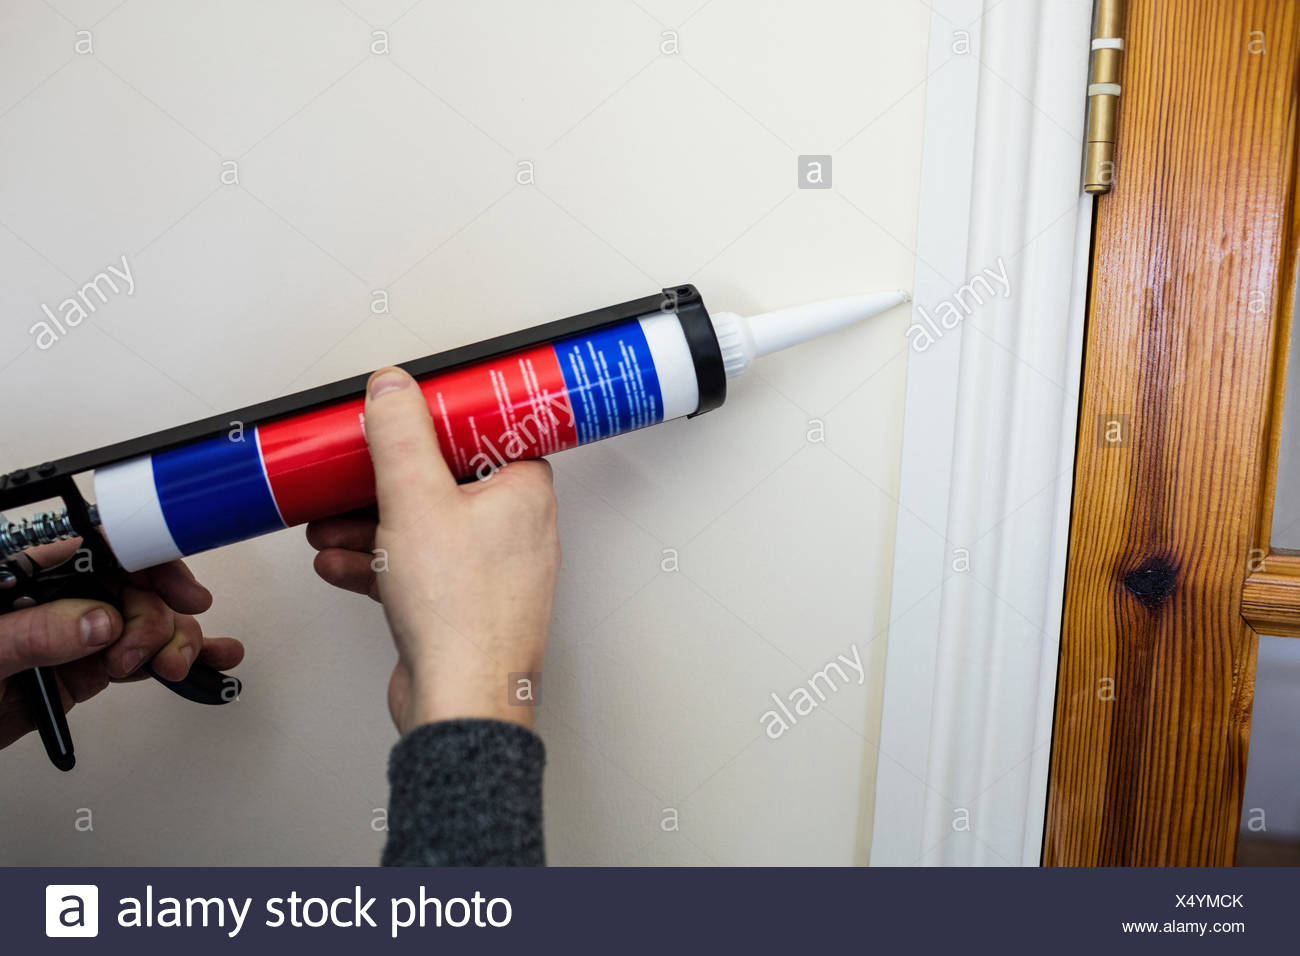 Man using pest control injection - Stock Image